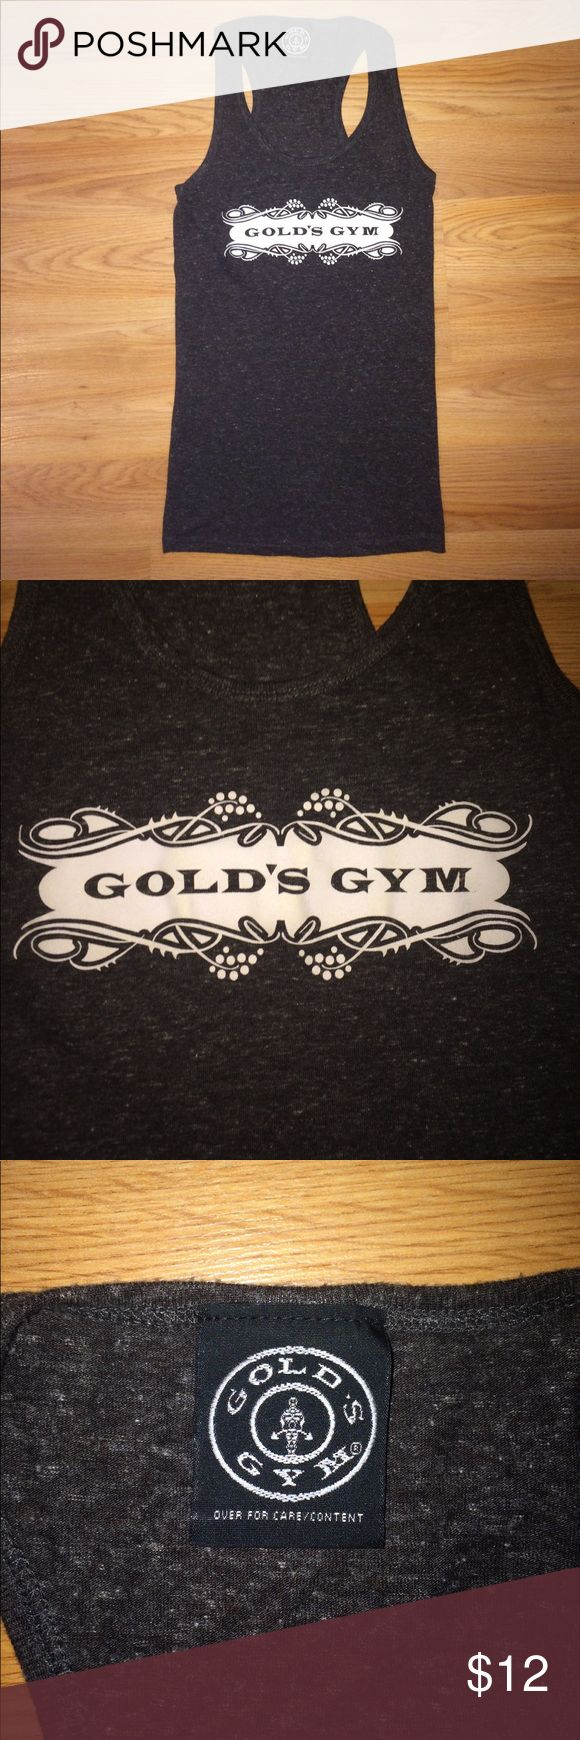 Gold's Gym Racerback Tank Never been worn! Tag says small, but it's too tight for me. Fits much closer to an extra small. Price fairly firm. Gold's Gym Tops Tank Tops